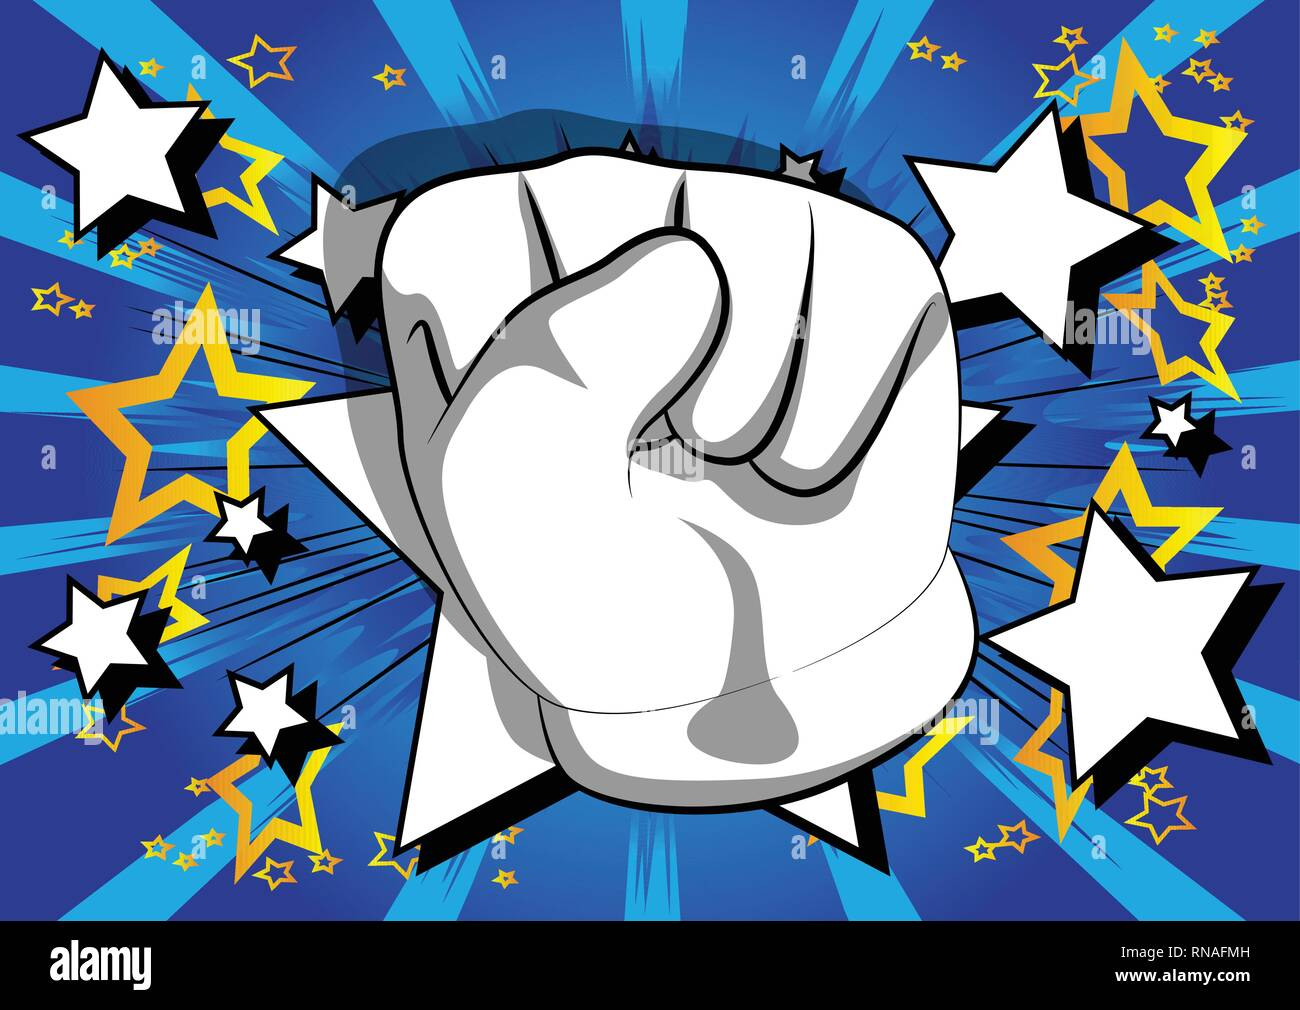 Vector cartoon hand making power to the people fist gesture. Illustrated hand sign on comic book background. Stock Vector